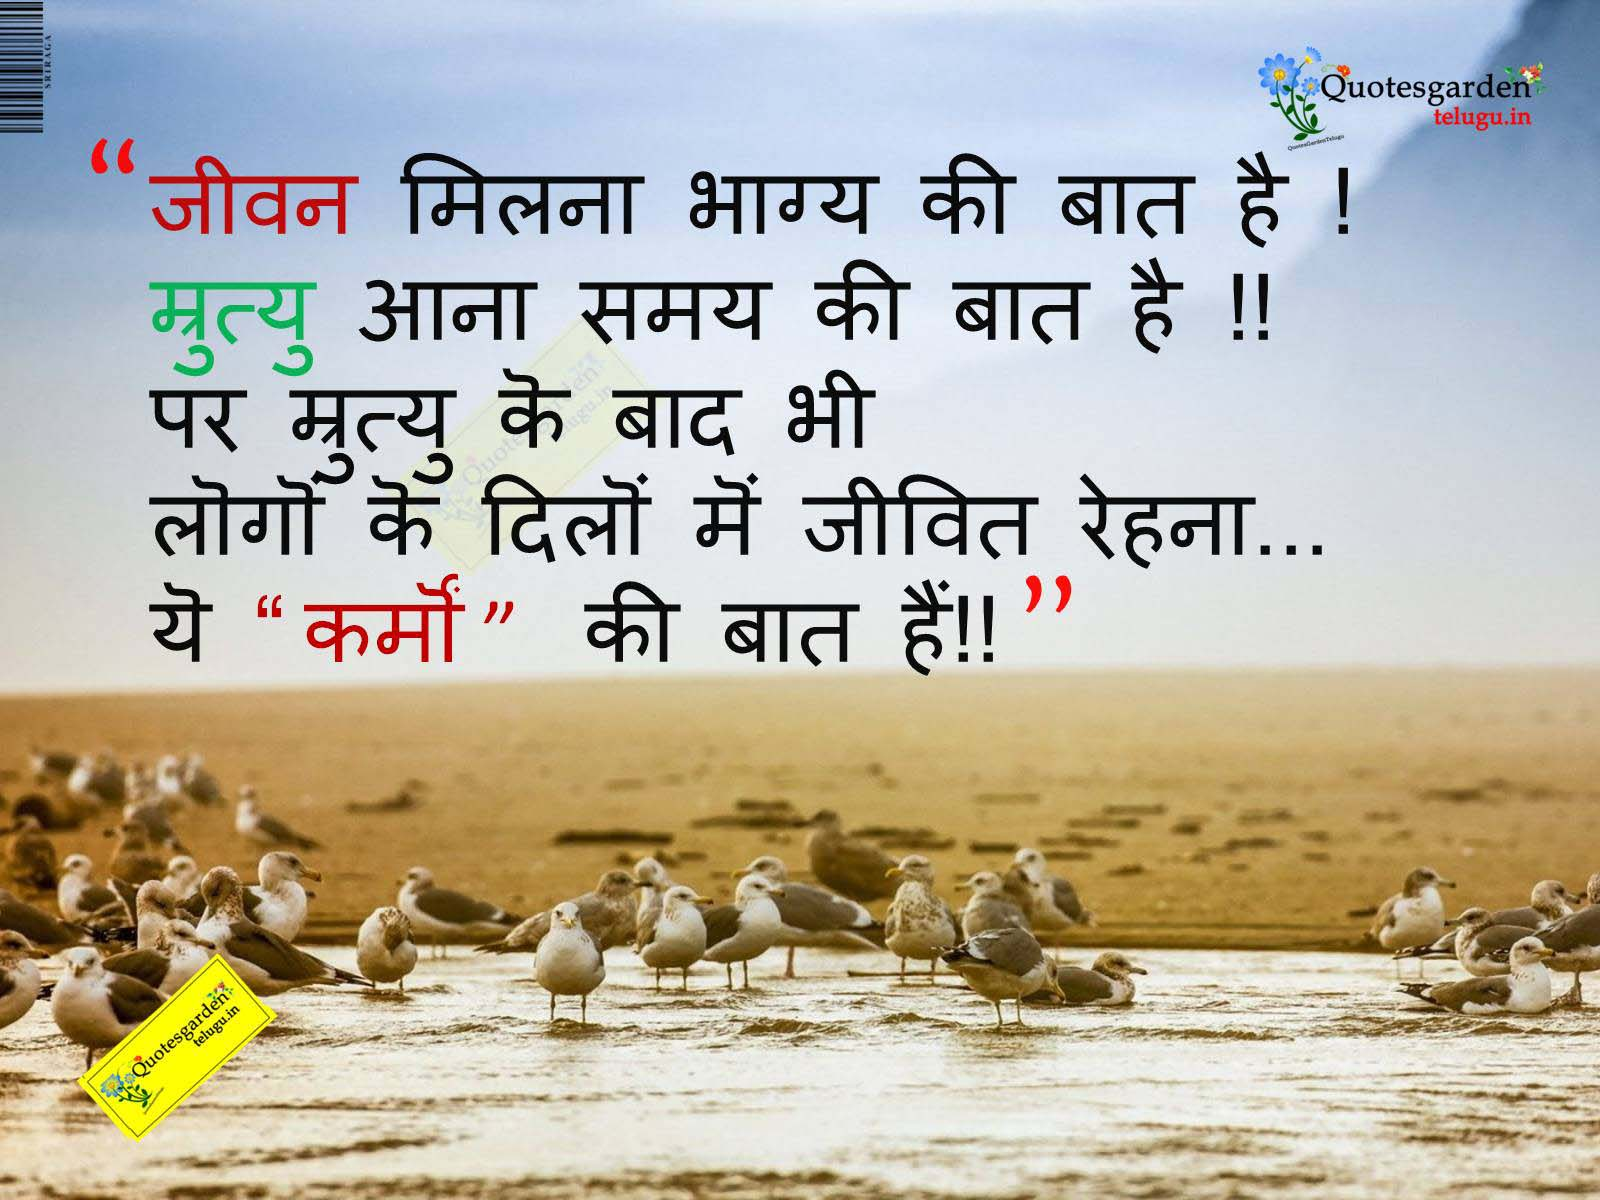 best hindi quotes suvichar anmol vachan quotes garden